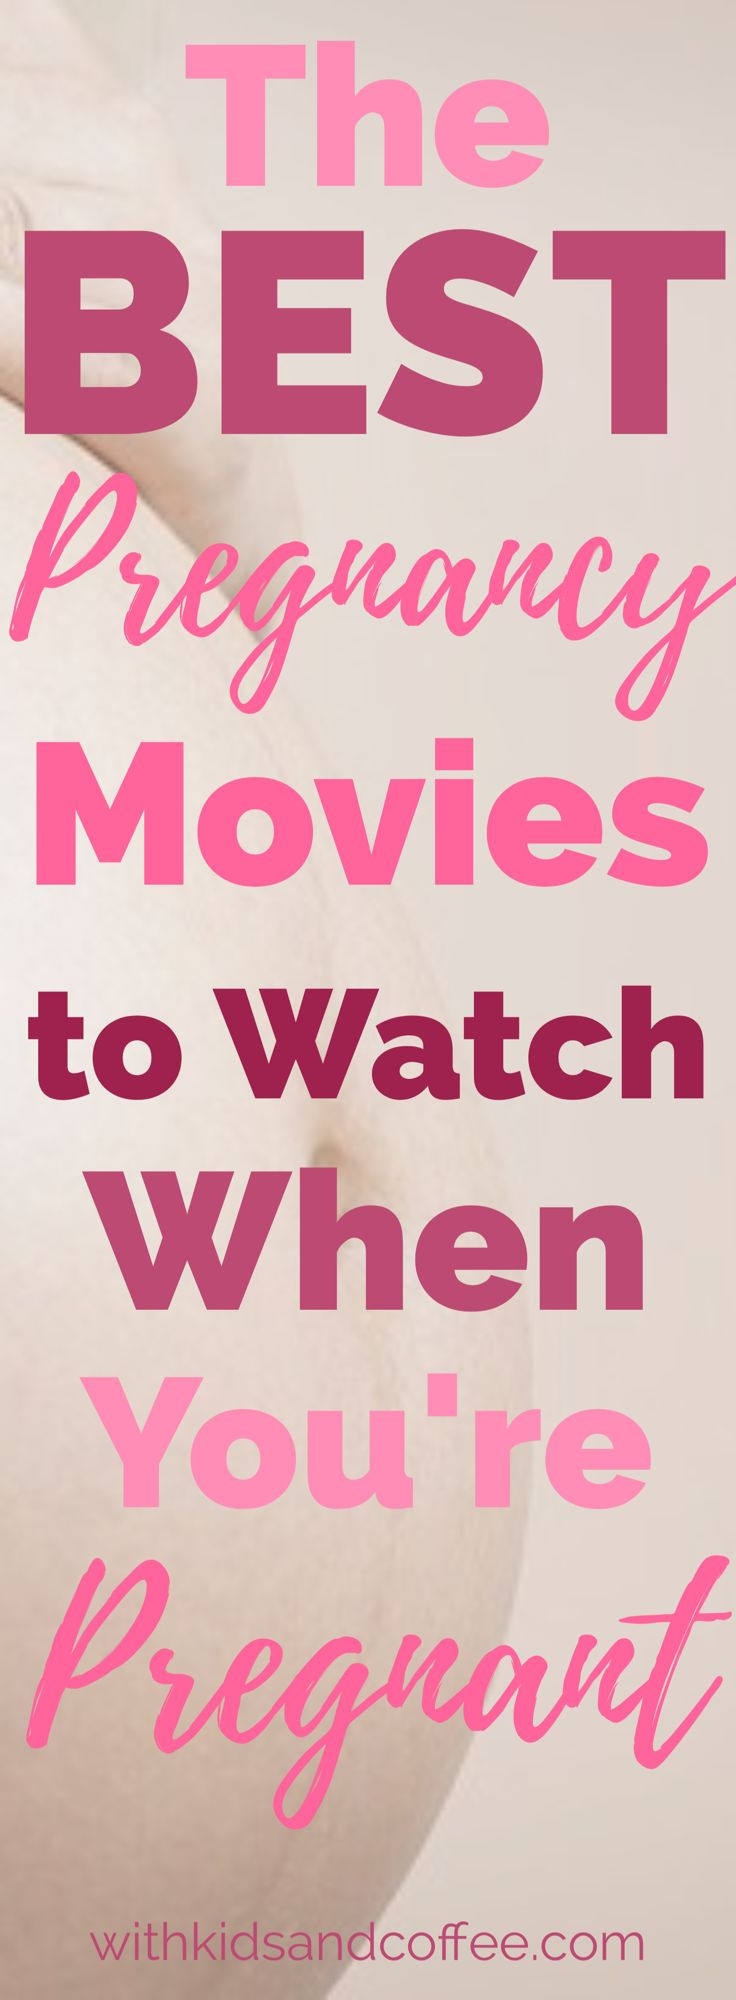 Best Pregnancy Movies to Watch When You're Pregnant | If you're pregnant and spending a lot of time laying on the couch trying to rest, cozy up with one of these movies about being pregnant or featuring a pregnant character.